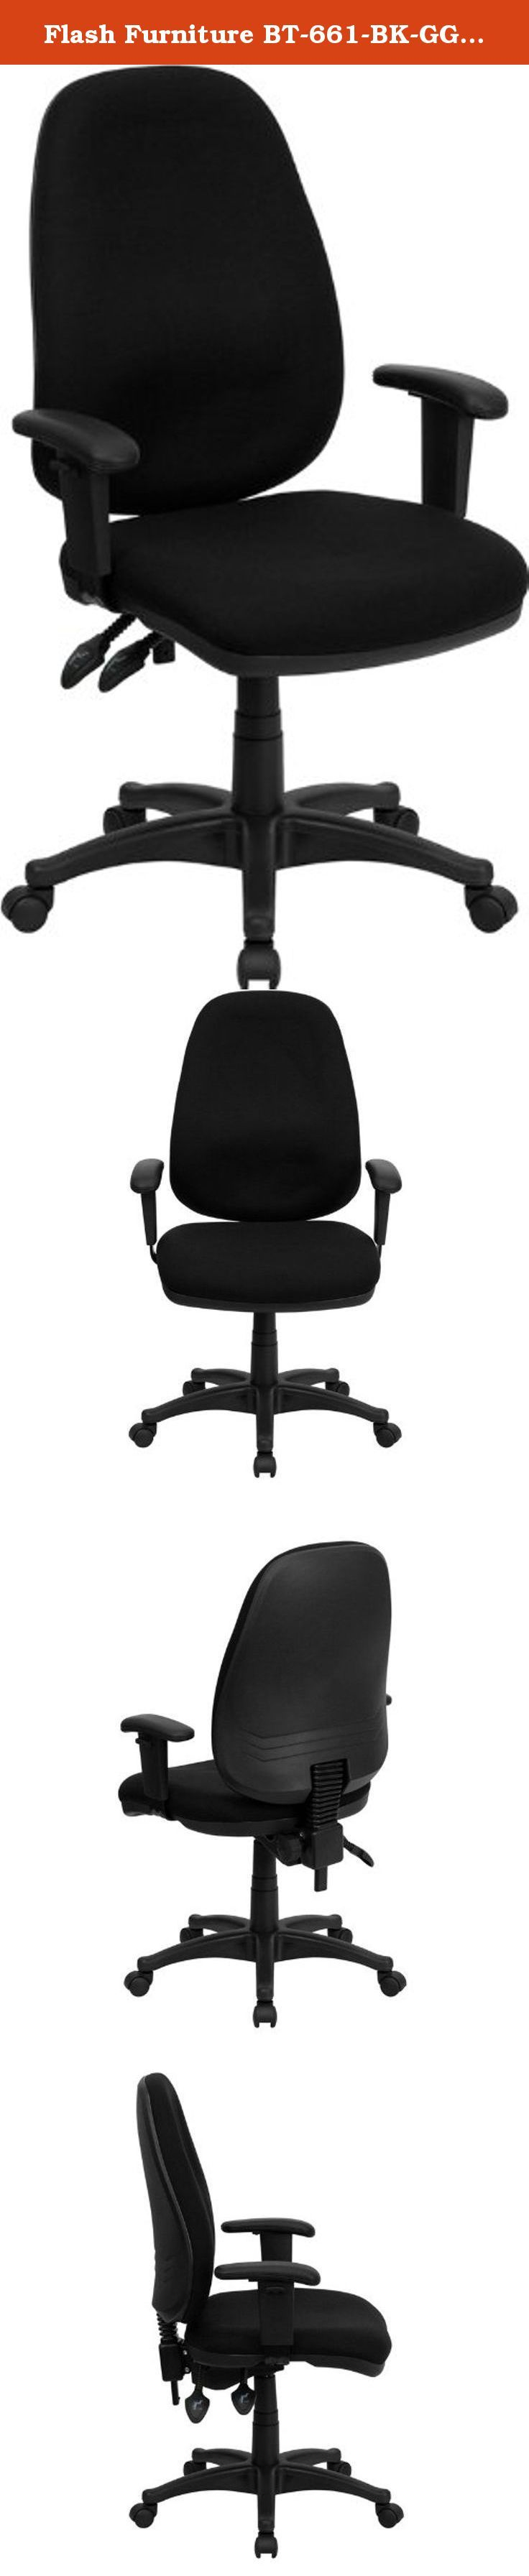 Flash Furniture BT-661-BK-GG High Back Black Fabric Ergonomic Computer Chair with Height Adjustable Arms. This black computer task chair has all the features needed to ensure that comfort even on the days that seem never-ending. Characteristics such as built-in lumbar support, height adjustable seat, back, and arms, and its ergonomic design make this task chair perfectly customizable for your use. [BT-661-BK-GG].